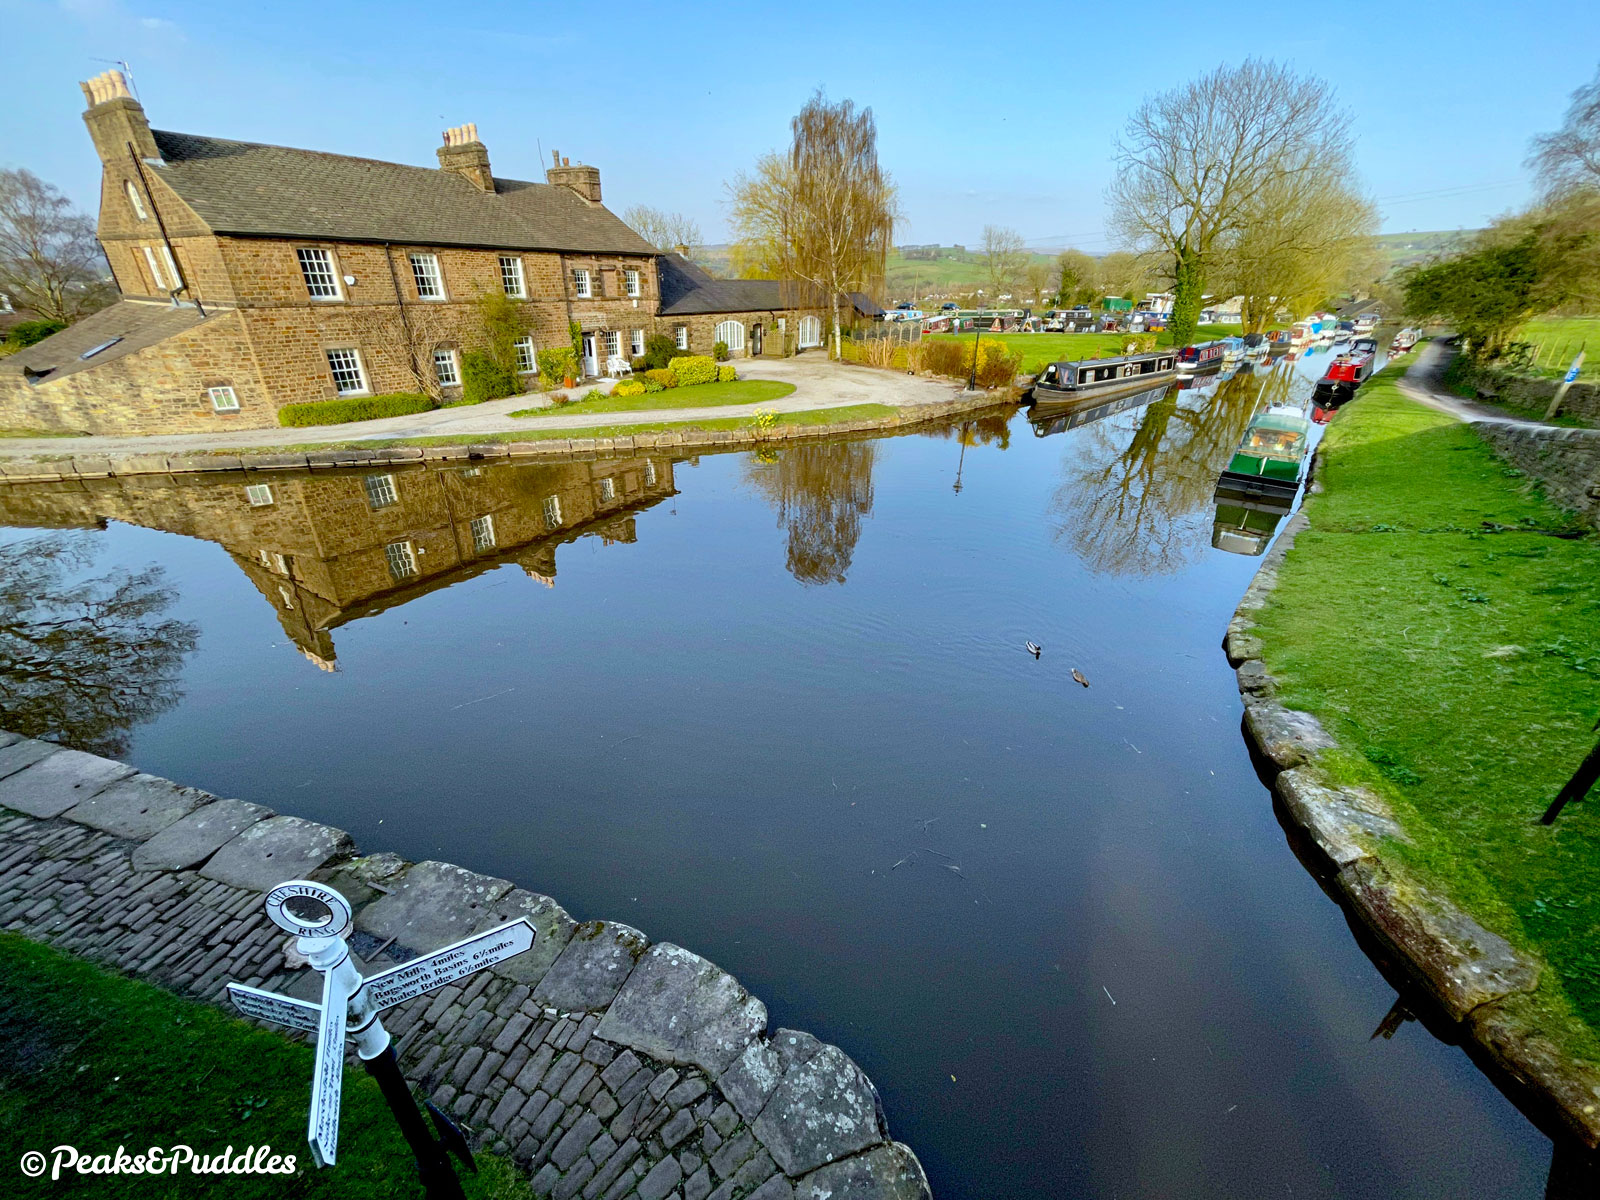 Looking to Top Lock House and the start of the Upper Peak Forest Canal from Marple Junction, atop the first bridge of the Macclesfield Canal.